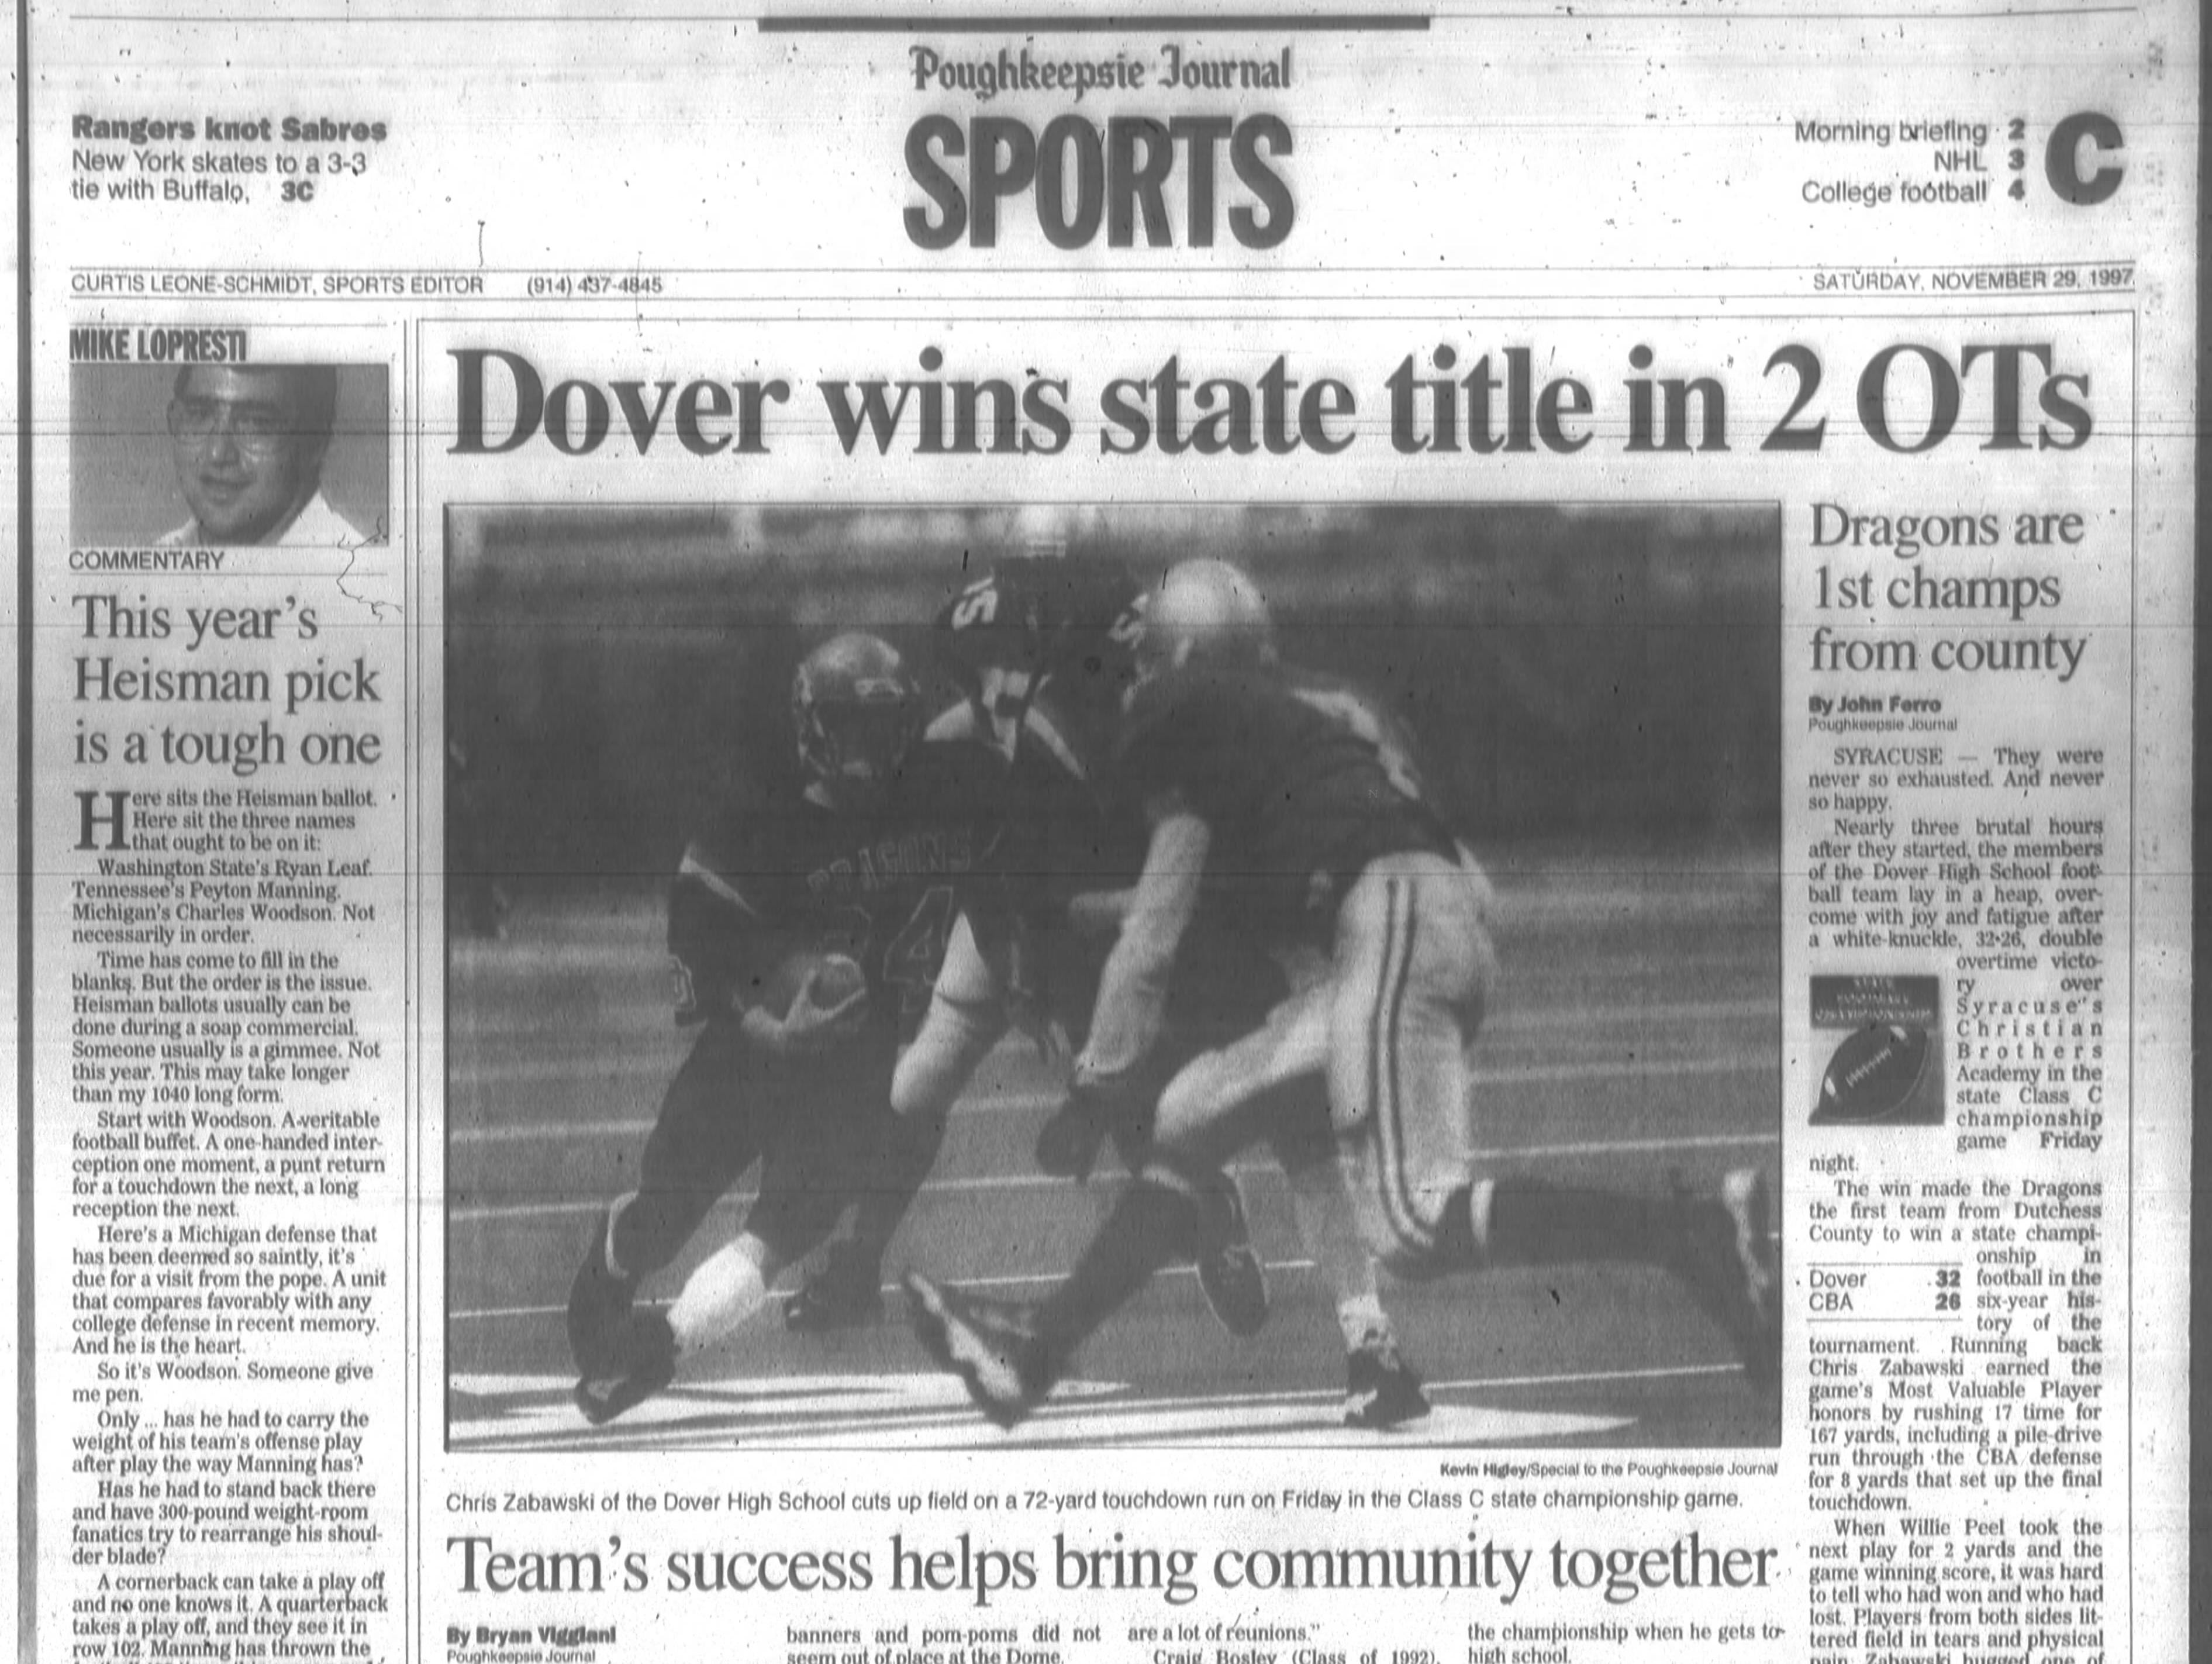 The Nov. 29, 1997 cover of the Journal's Sports section featured Dover High School's state football championship.